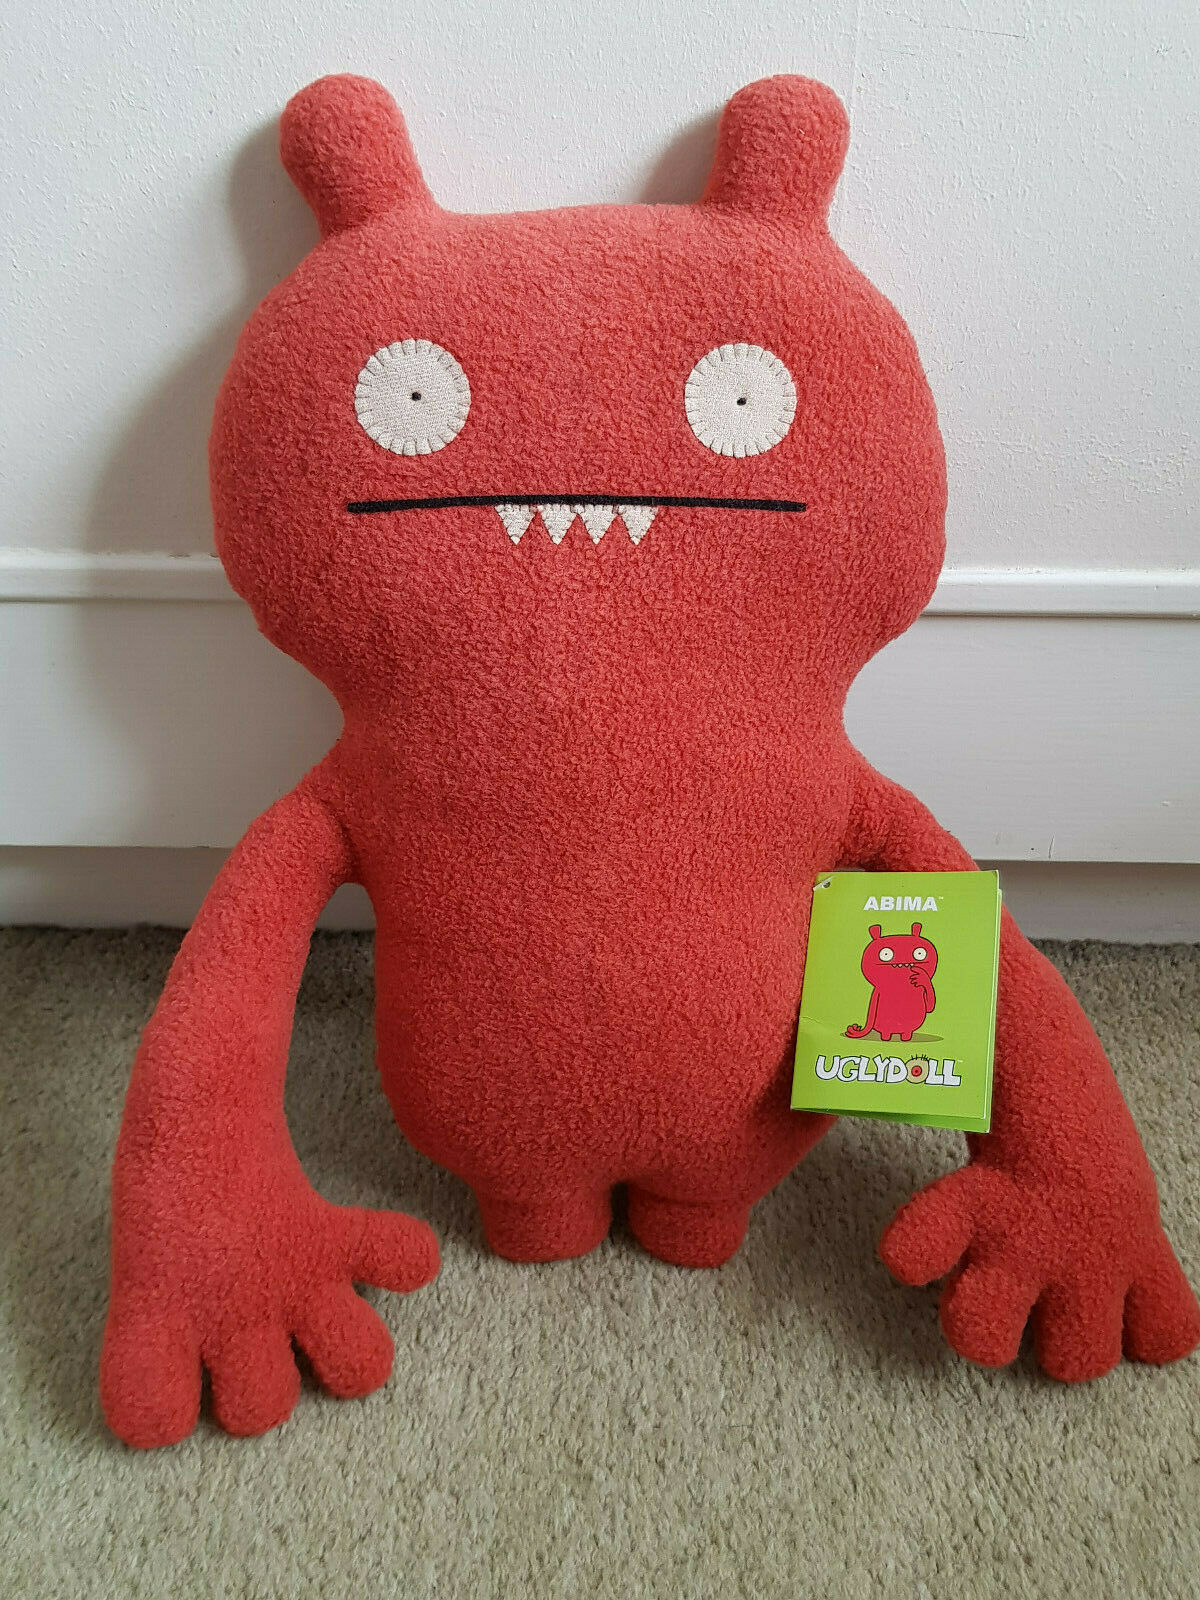 Very Rare UGLY DOLL ABIMA Classic 2003 Plush Doll With With Tags EXCELLENT CONDITION